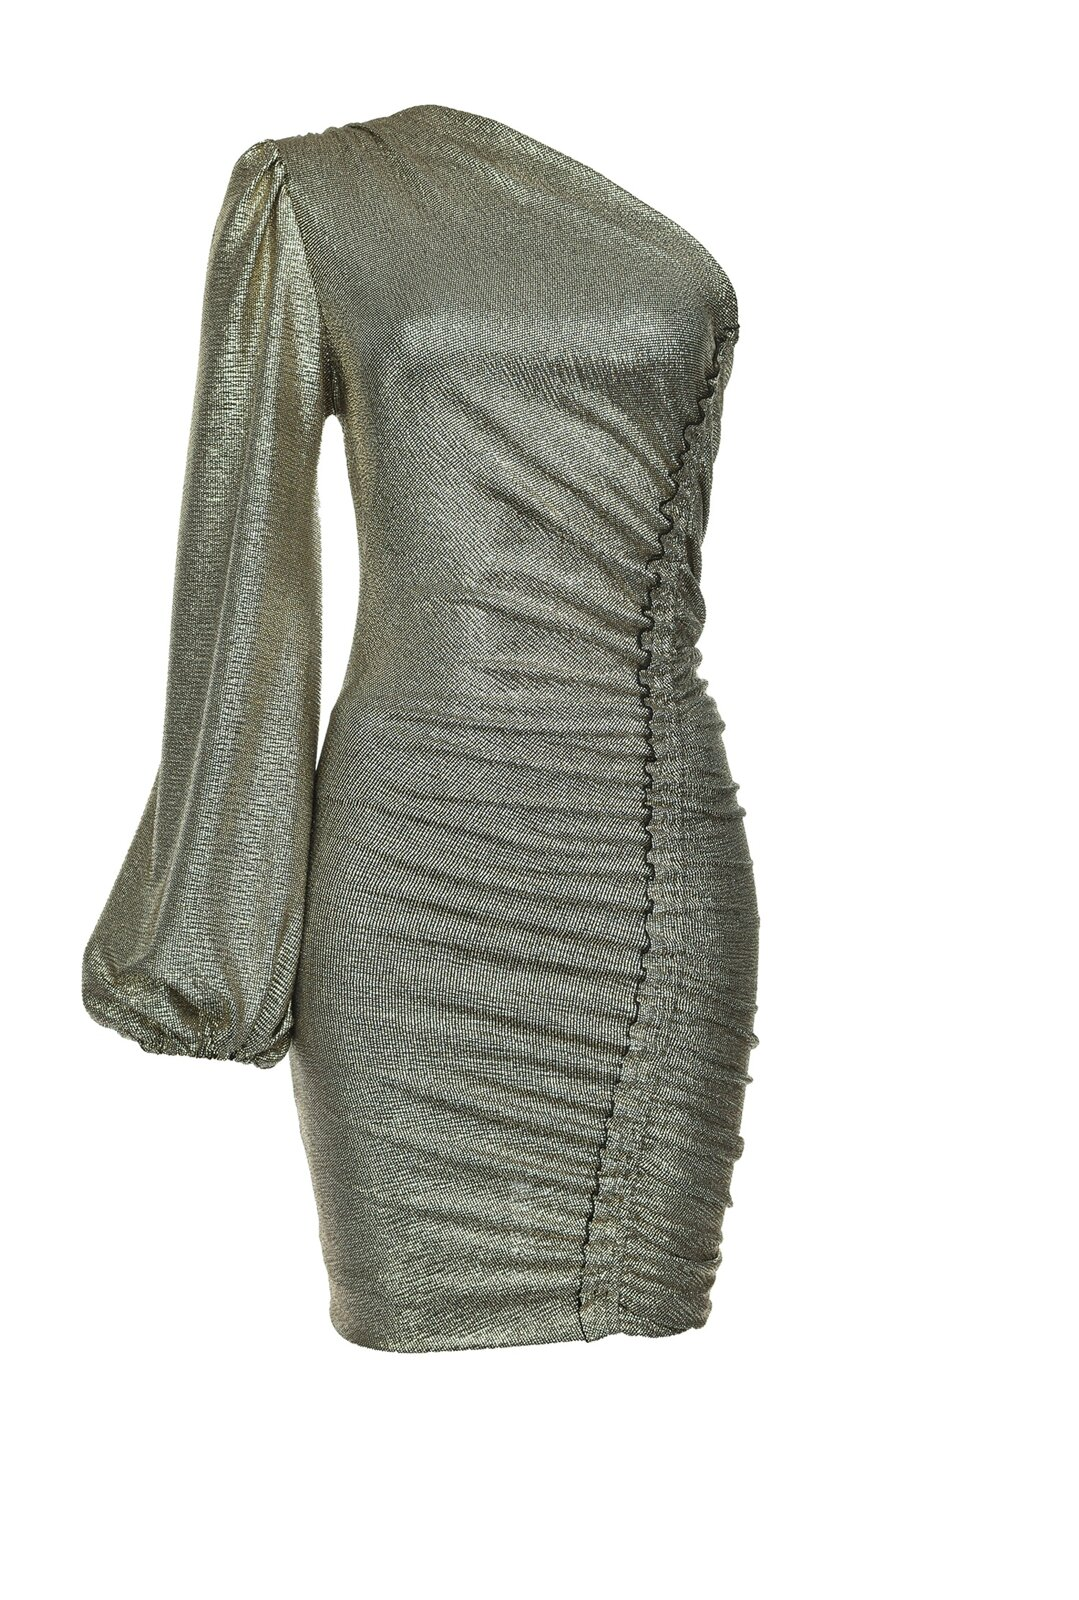 One Shoulder Dress In Laminated Jersey - Pinko